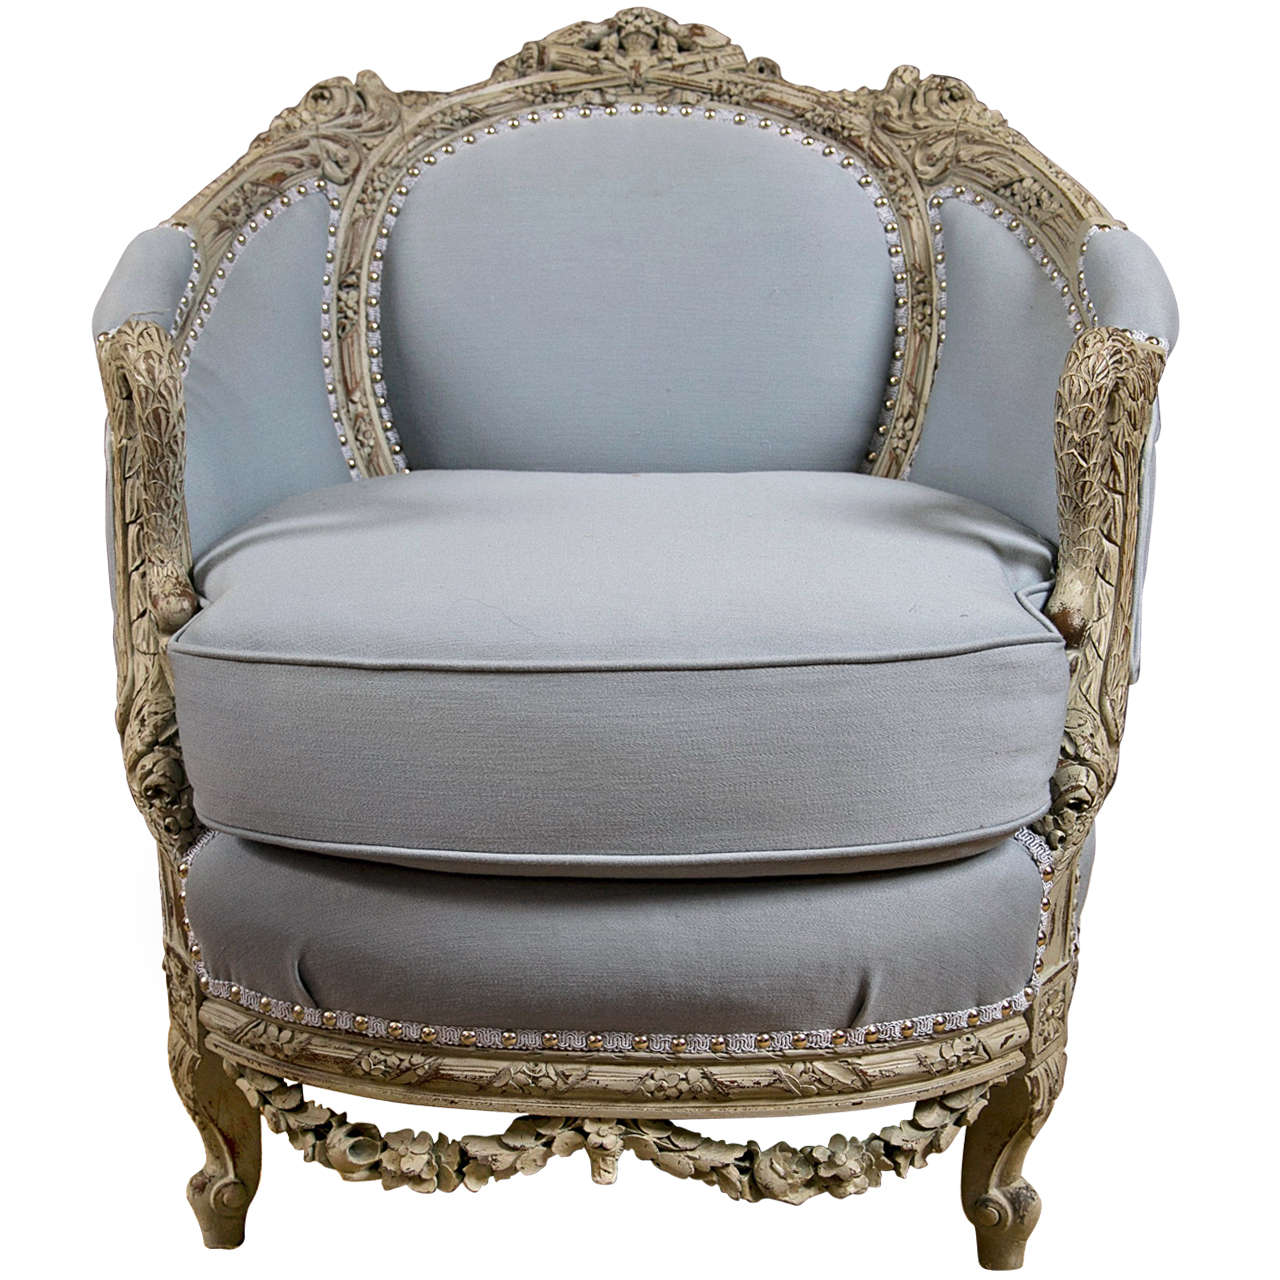 An Antique Swedish Painted Decorated Swan Arm Chair For